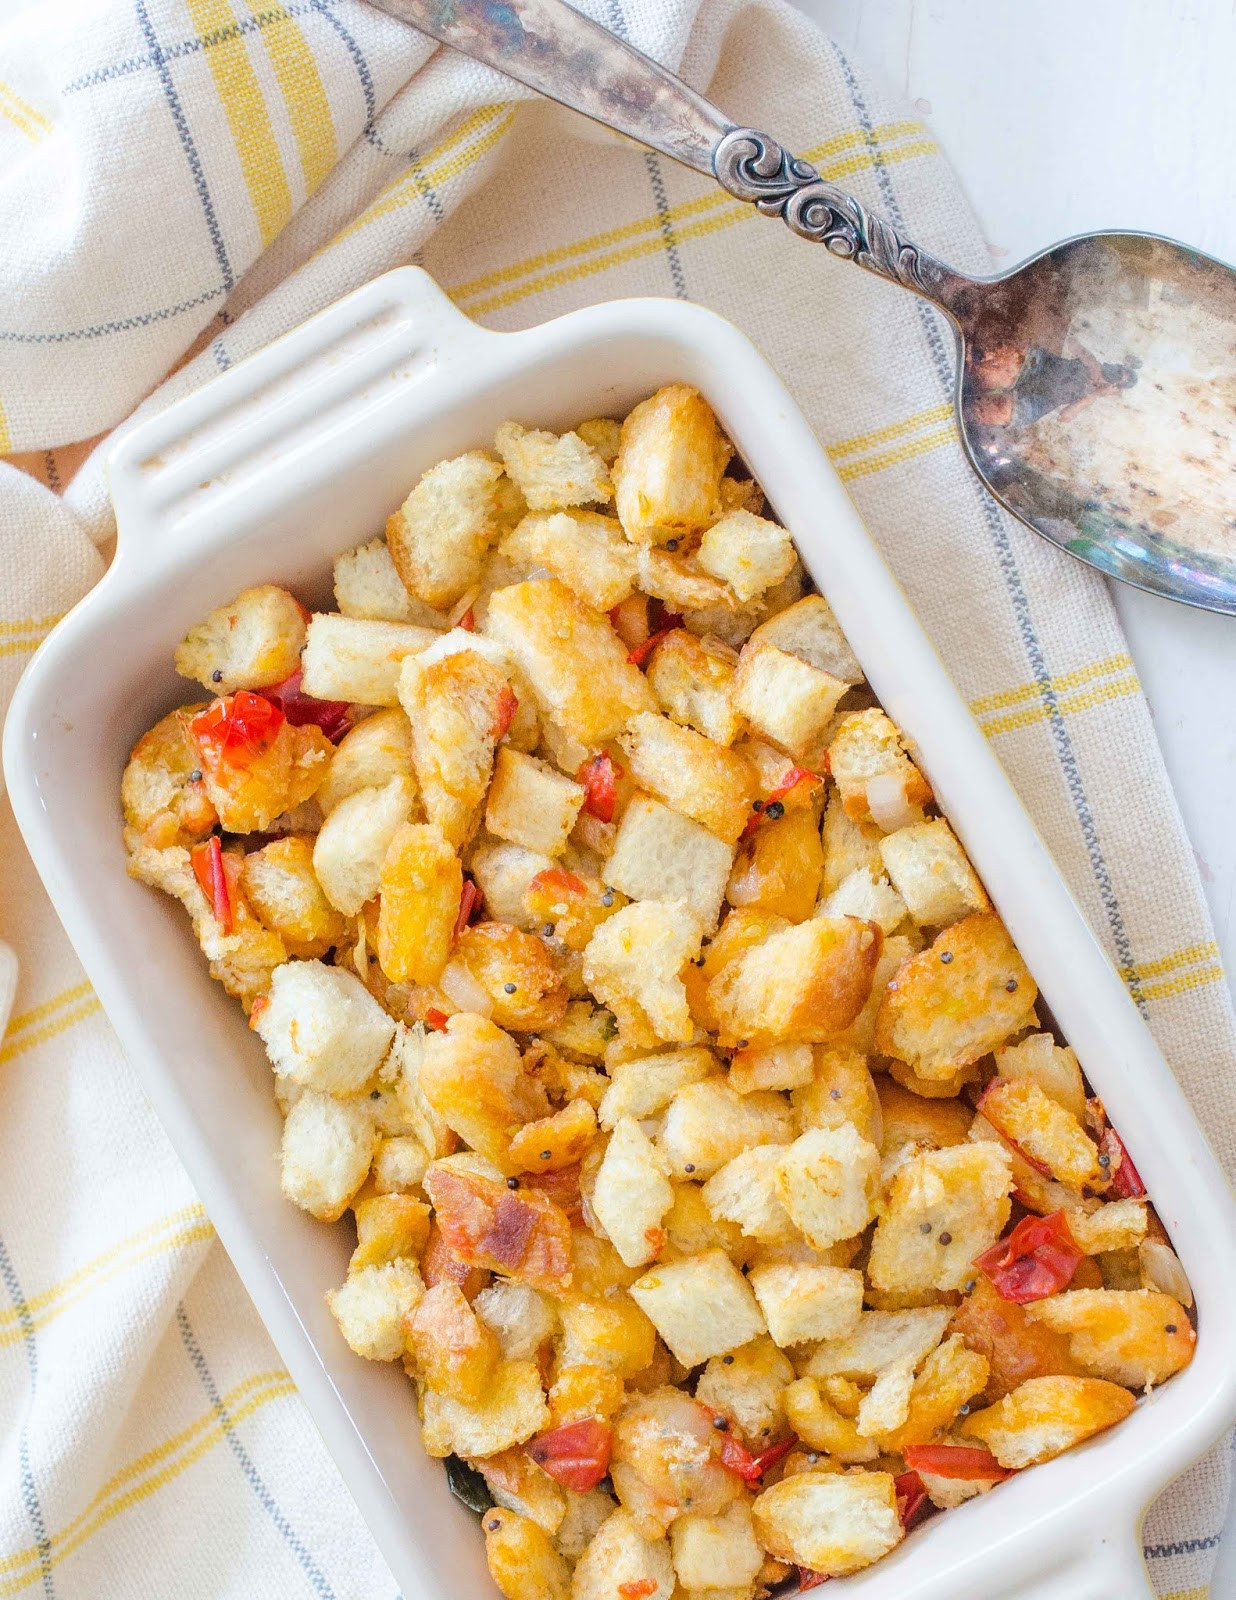 Thanksgiving Turkey Indian Style  Indian Spiced Turkey Stuffing for Thanksgiving The